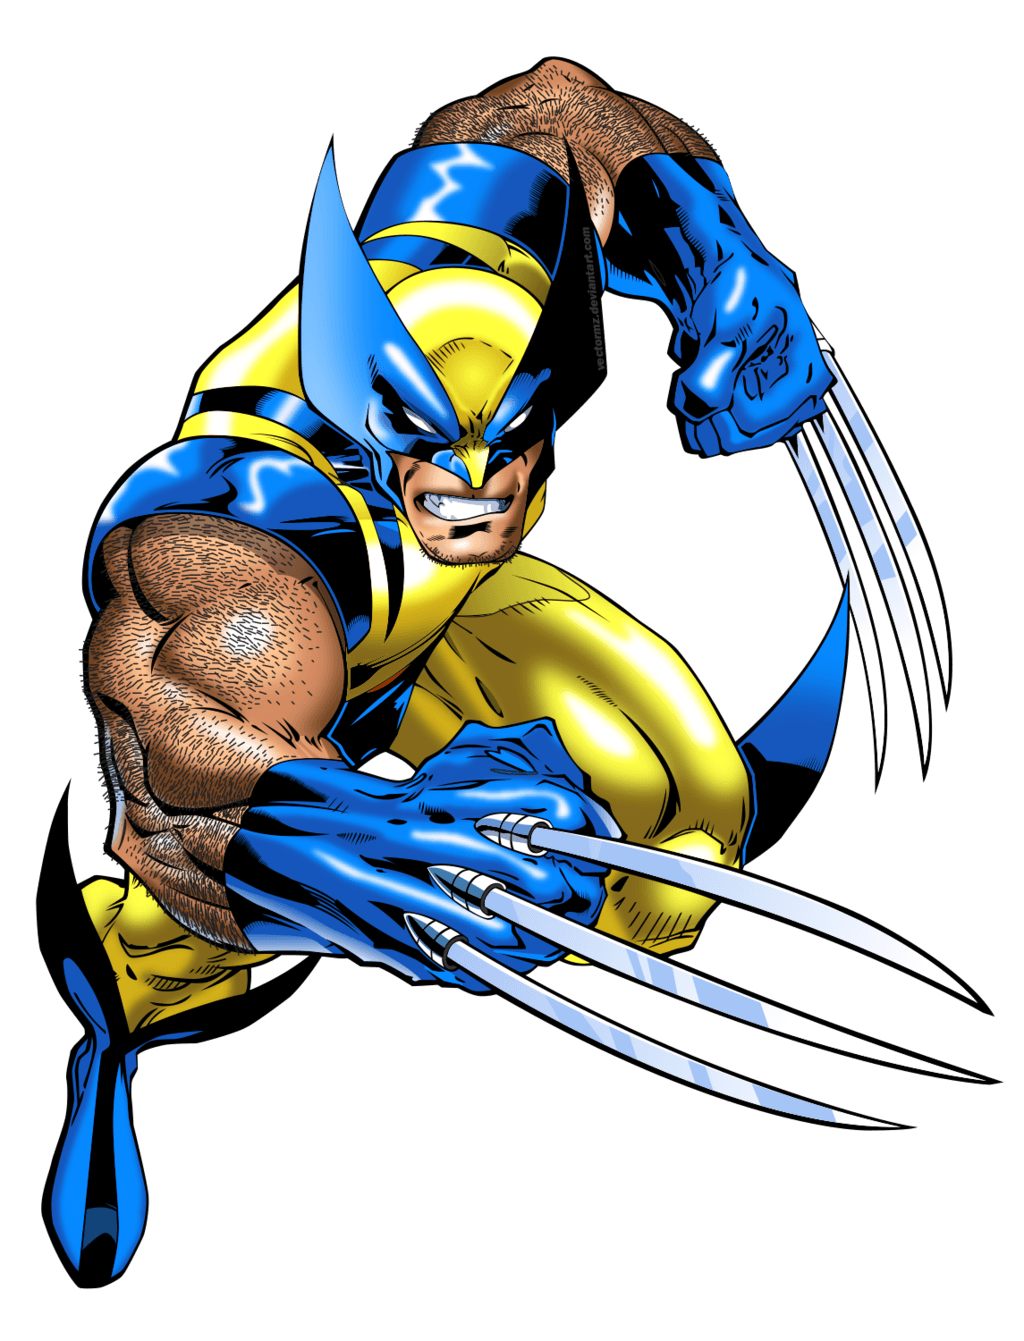 1024x1341 Wolverine HD PNG Transparent Wolverine HD.PNG Images.   PlusPNG